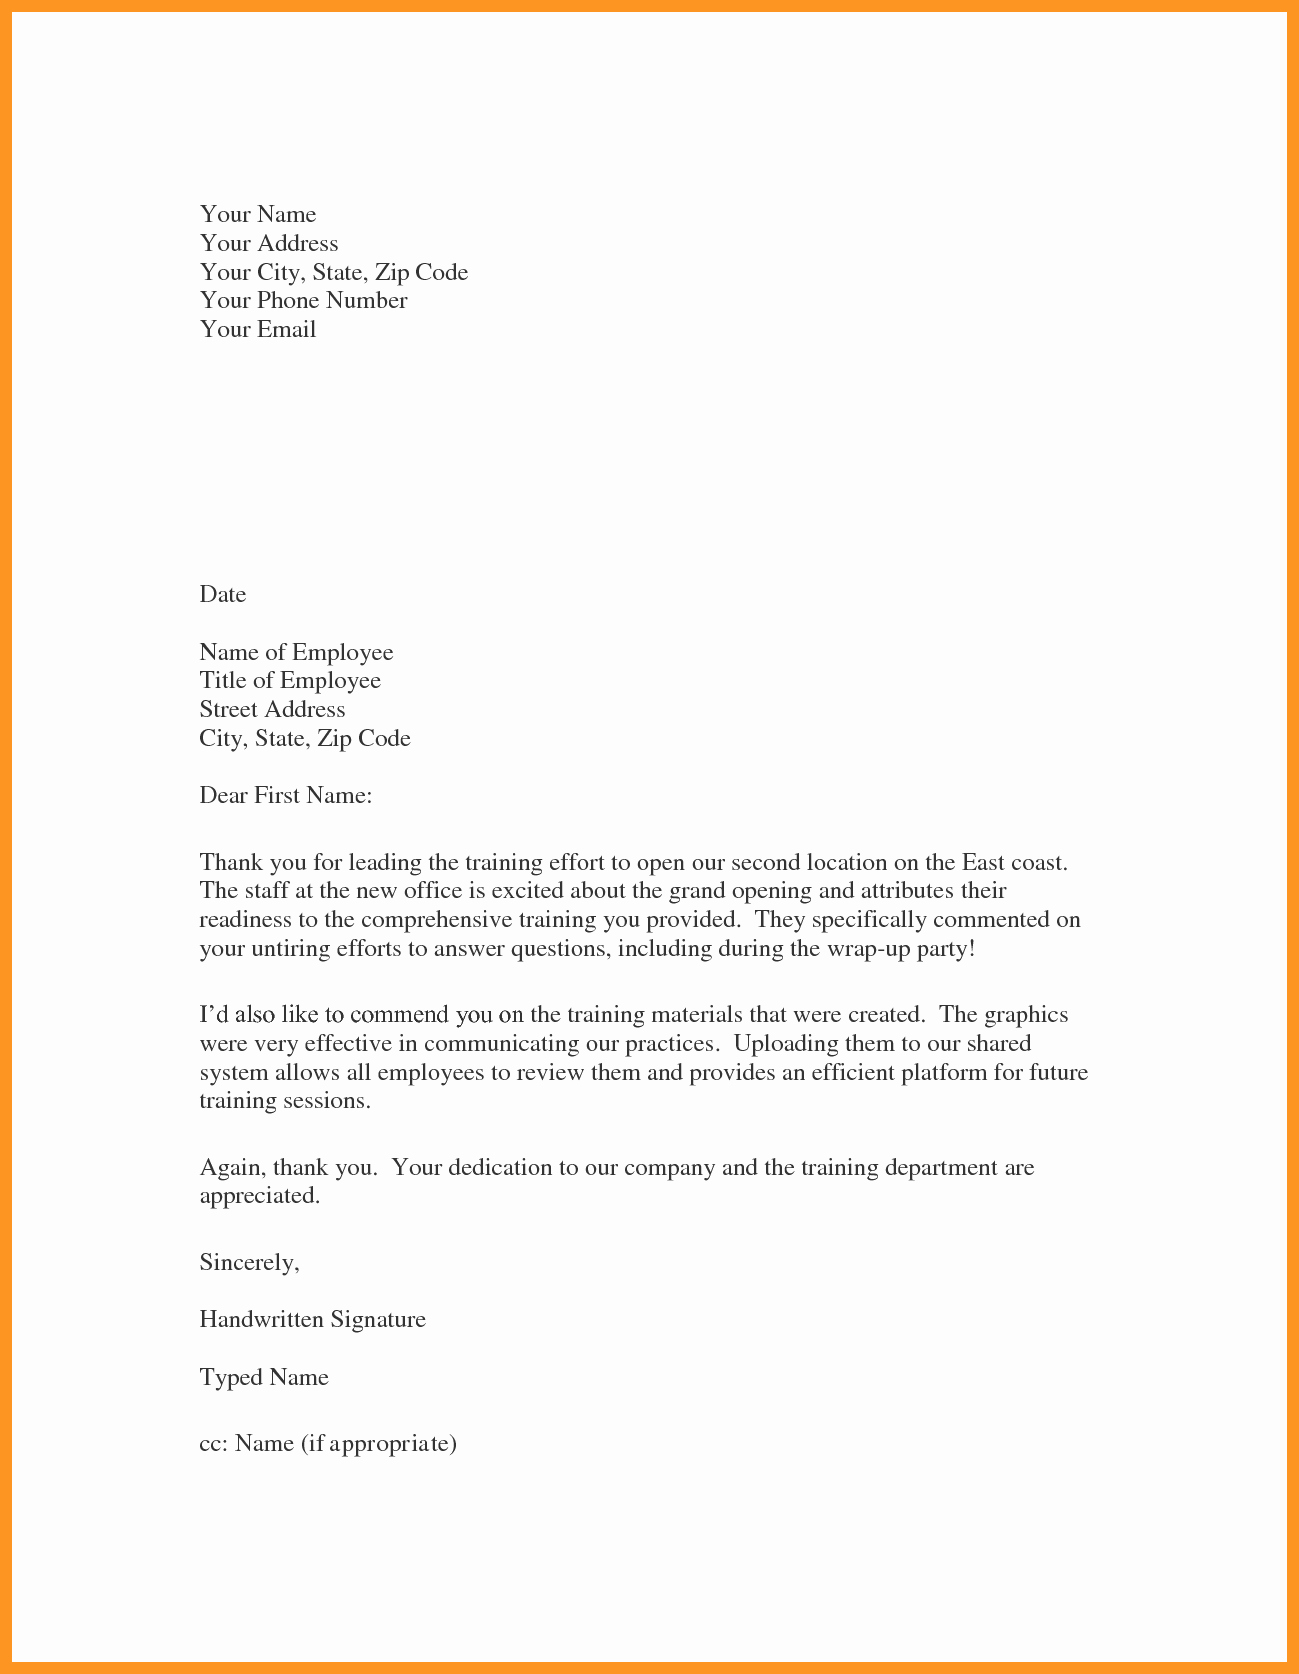 Sample Employee Appreciation Letter